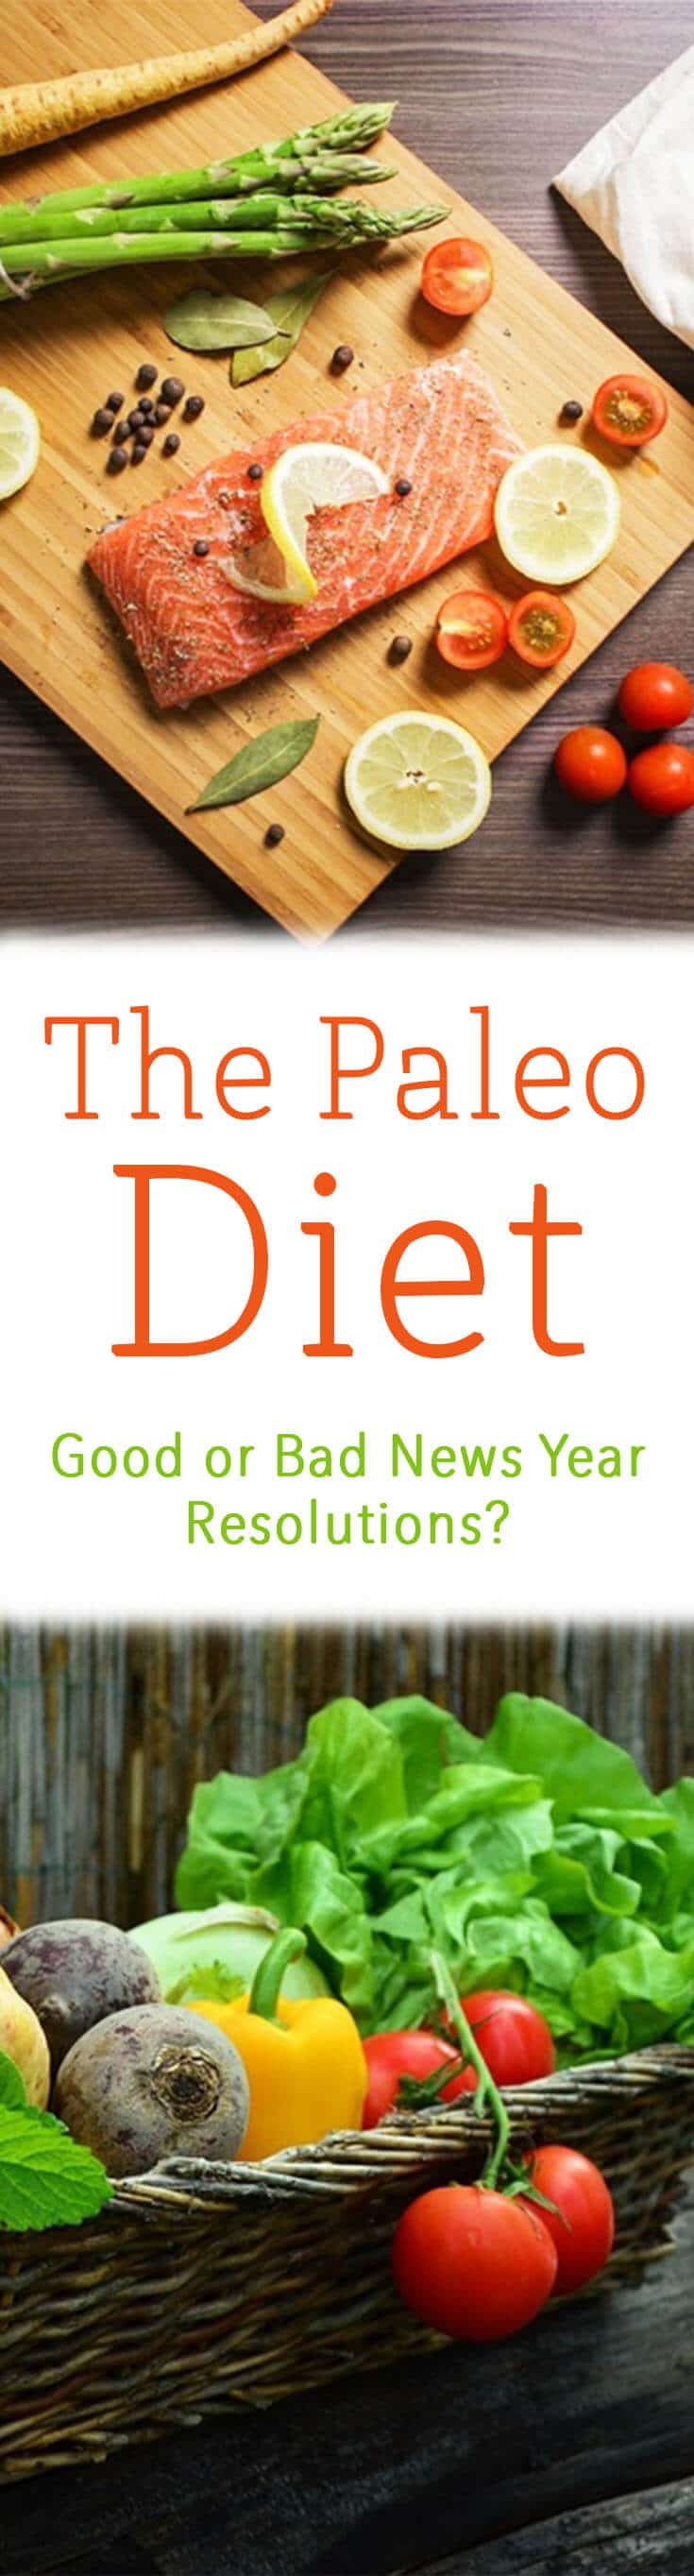 """A pinterest image of paleo friendly foods with the overlay text \""""The Paleo Diet Good or Bad News Year Resolutions?\"""""""